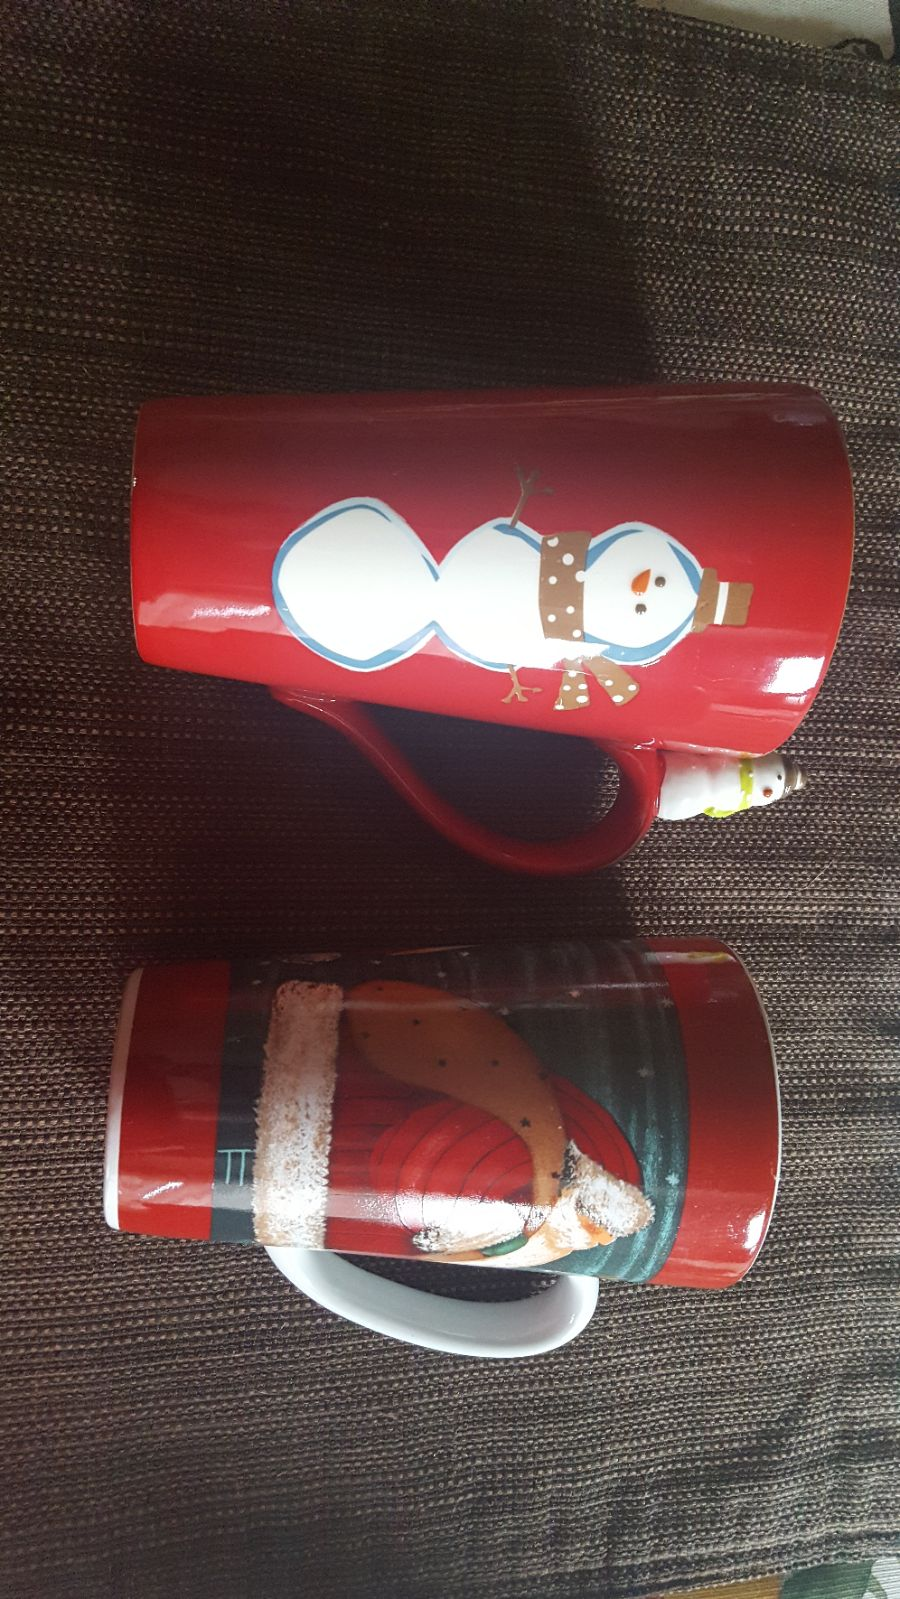 Xmas coffee mugs